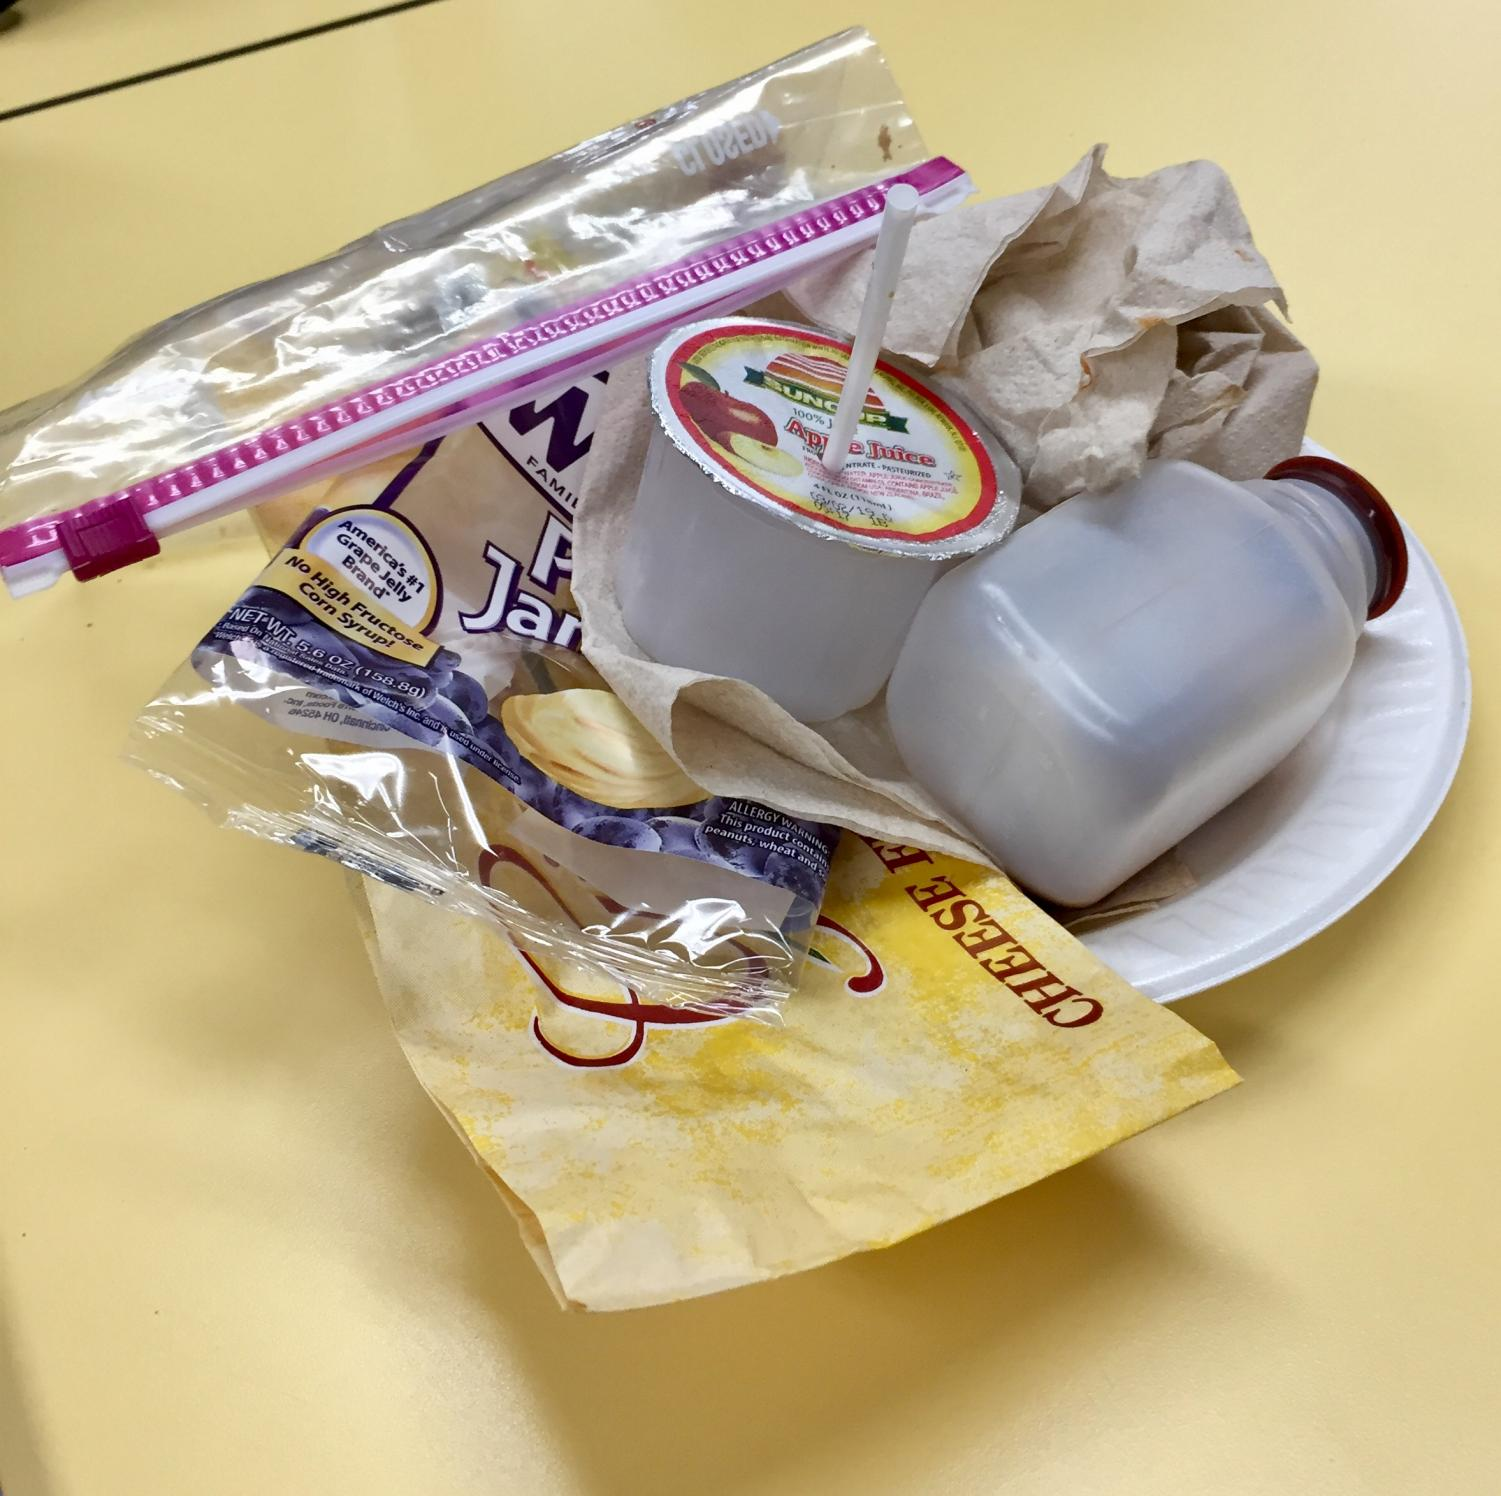 Trash that was left on the table after first lunch